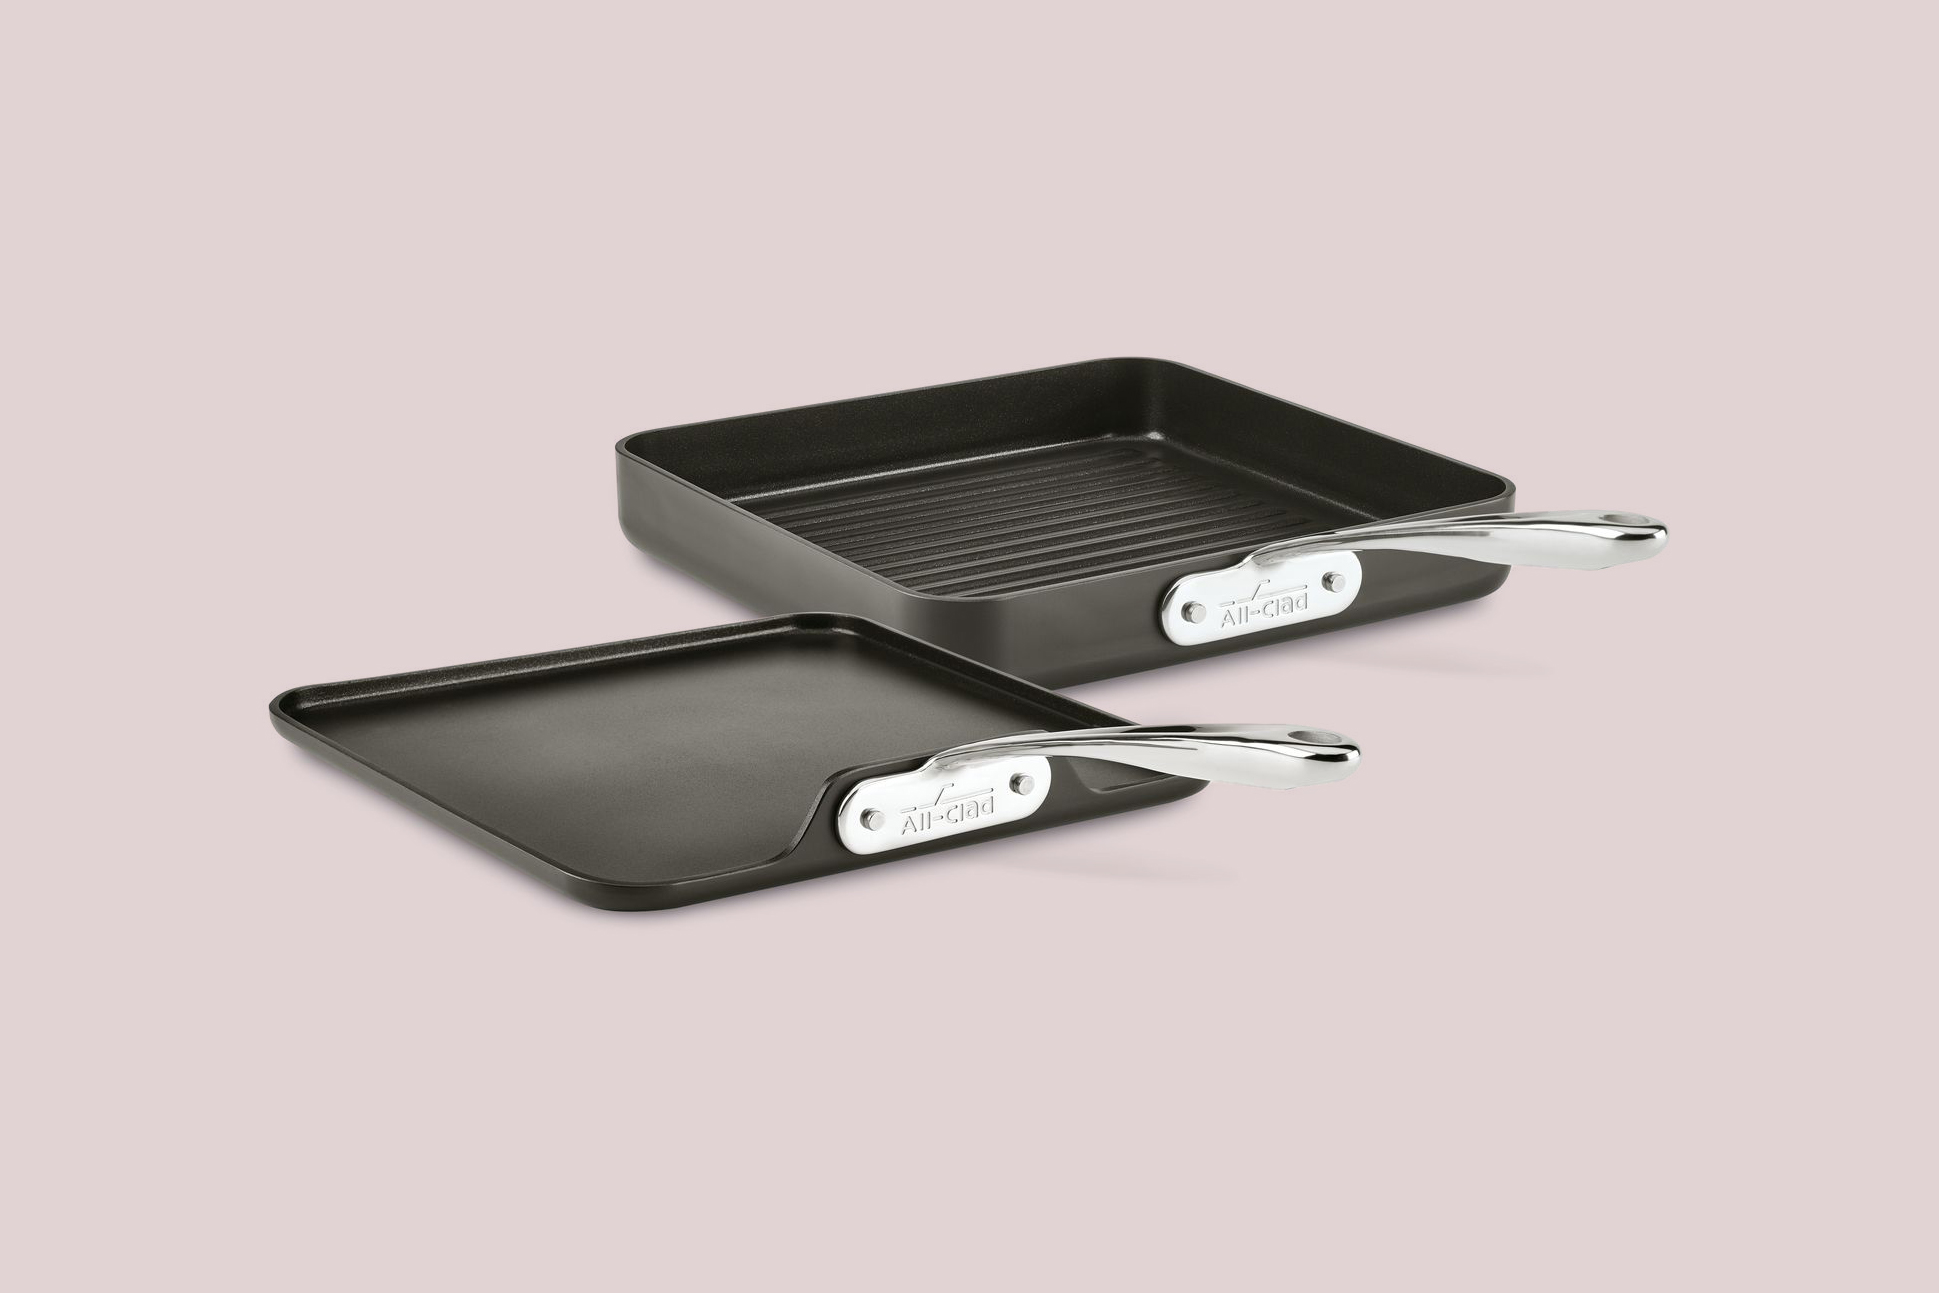 All-Clad Two-Piece Stacking Grill and Griddle Set